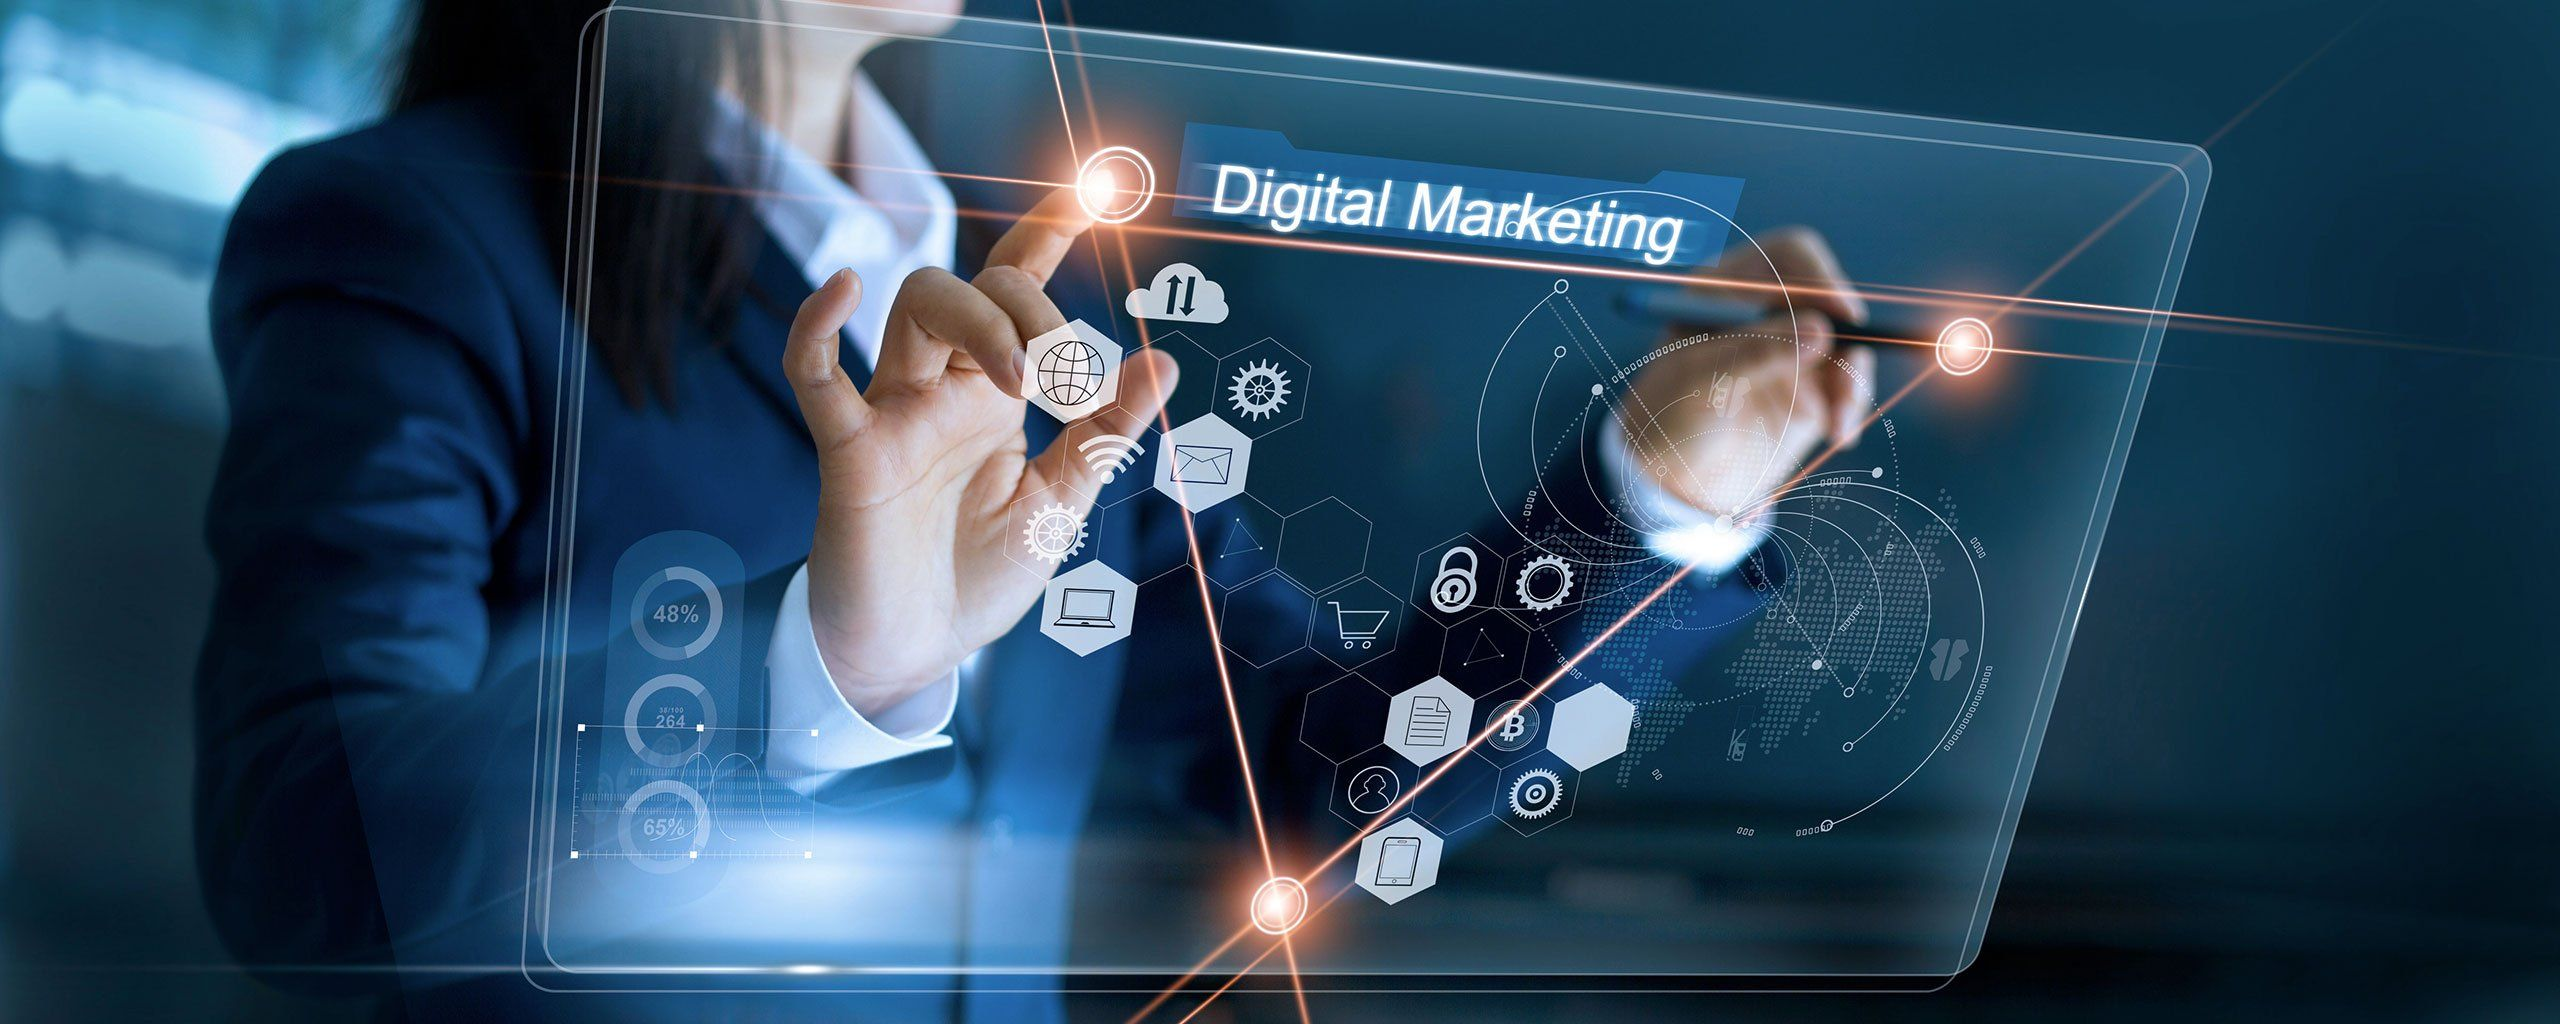 /7-digital-marketing-trends-to-follow-in-2020-kgt3upf feature image